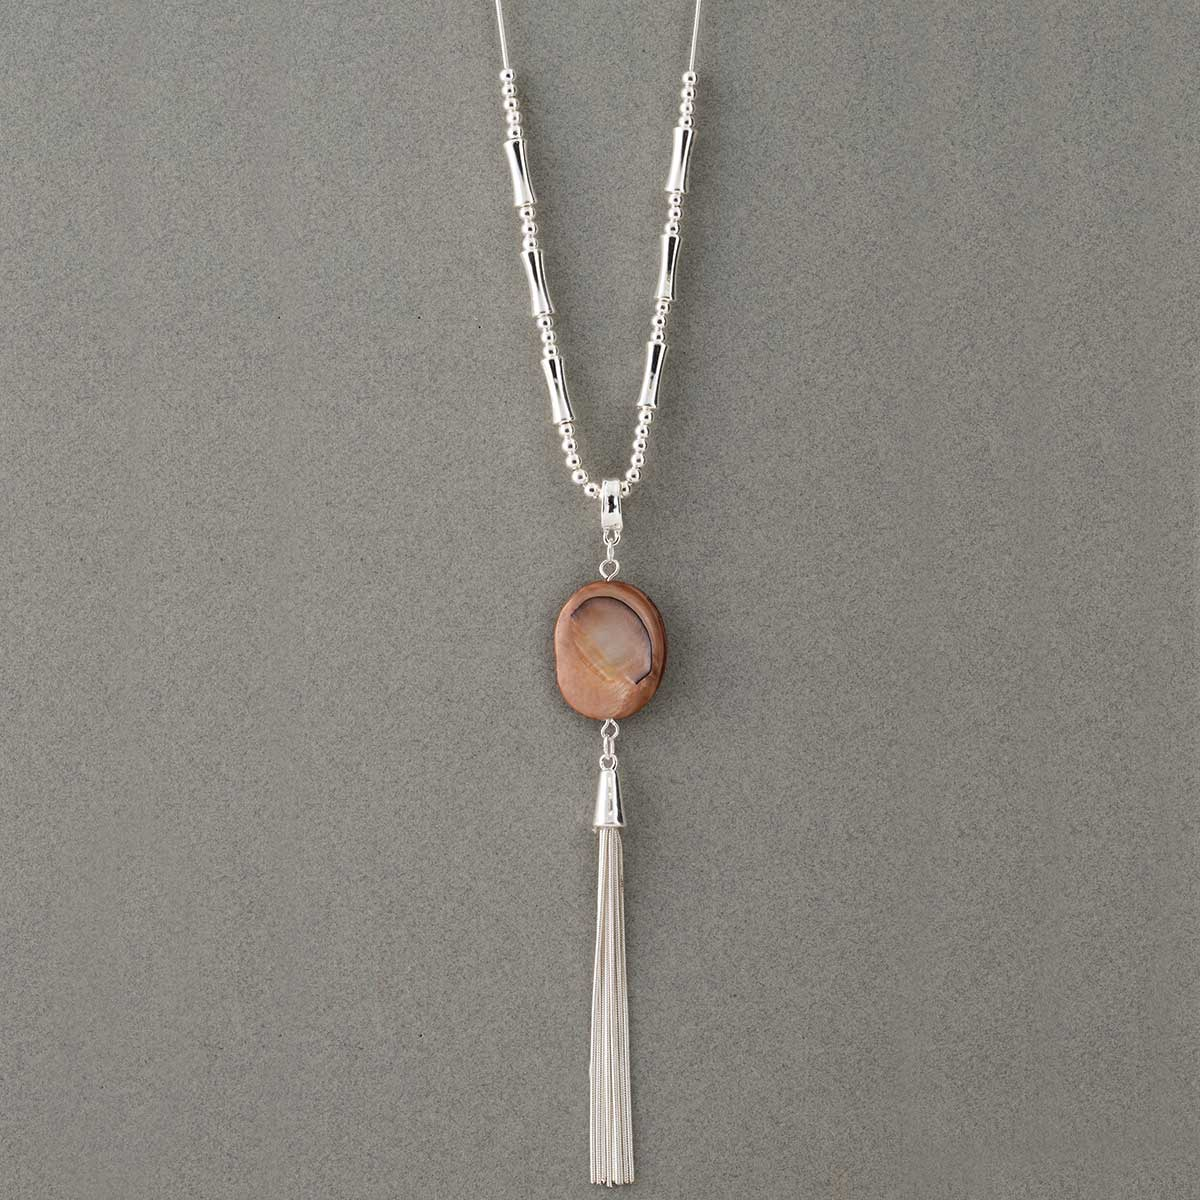 Silver Beads and Tassel Necklace on Chain